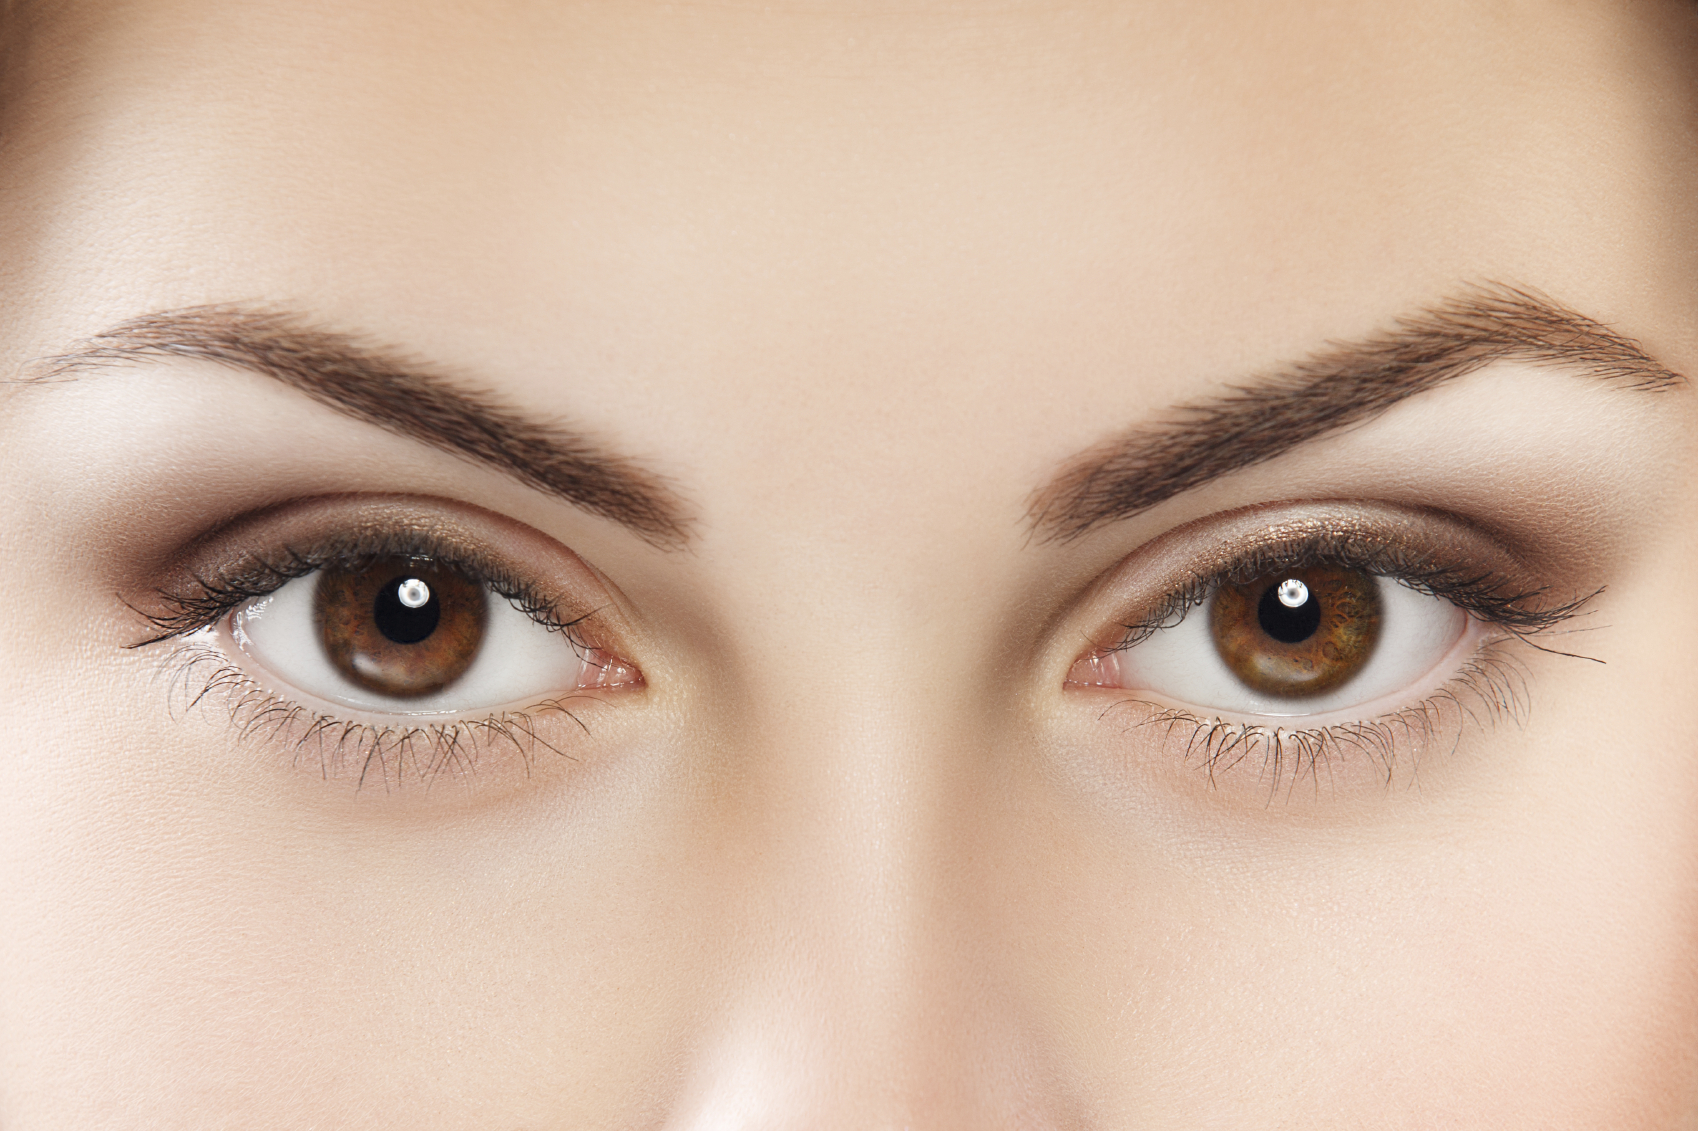 New Eye Contact Research: Is 3.2 Seconds The Magic Number? | Mr ...